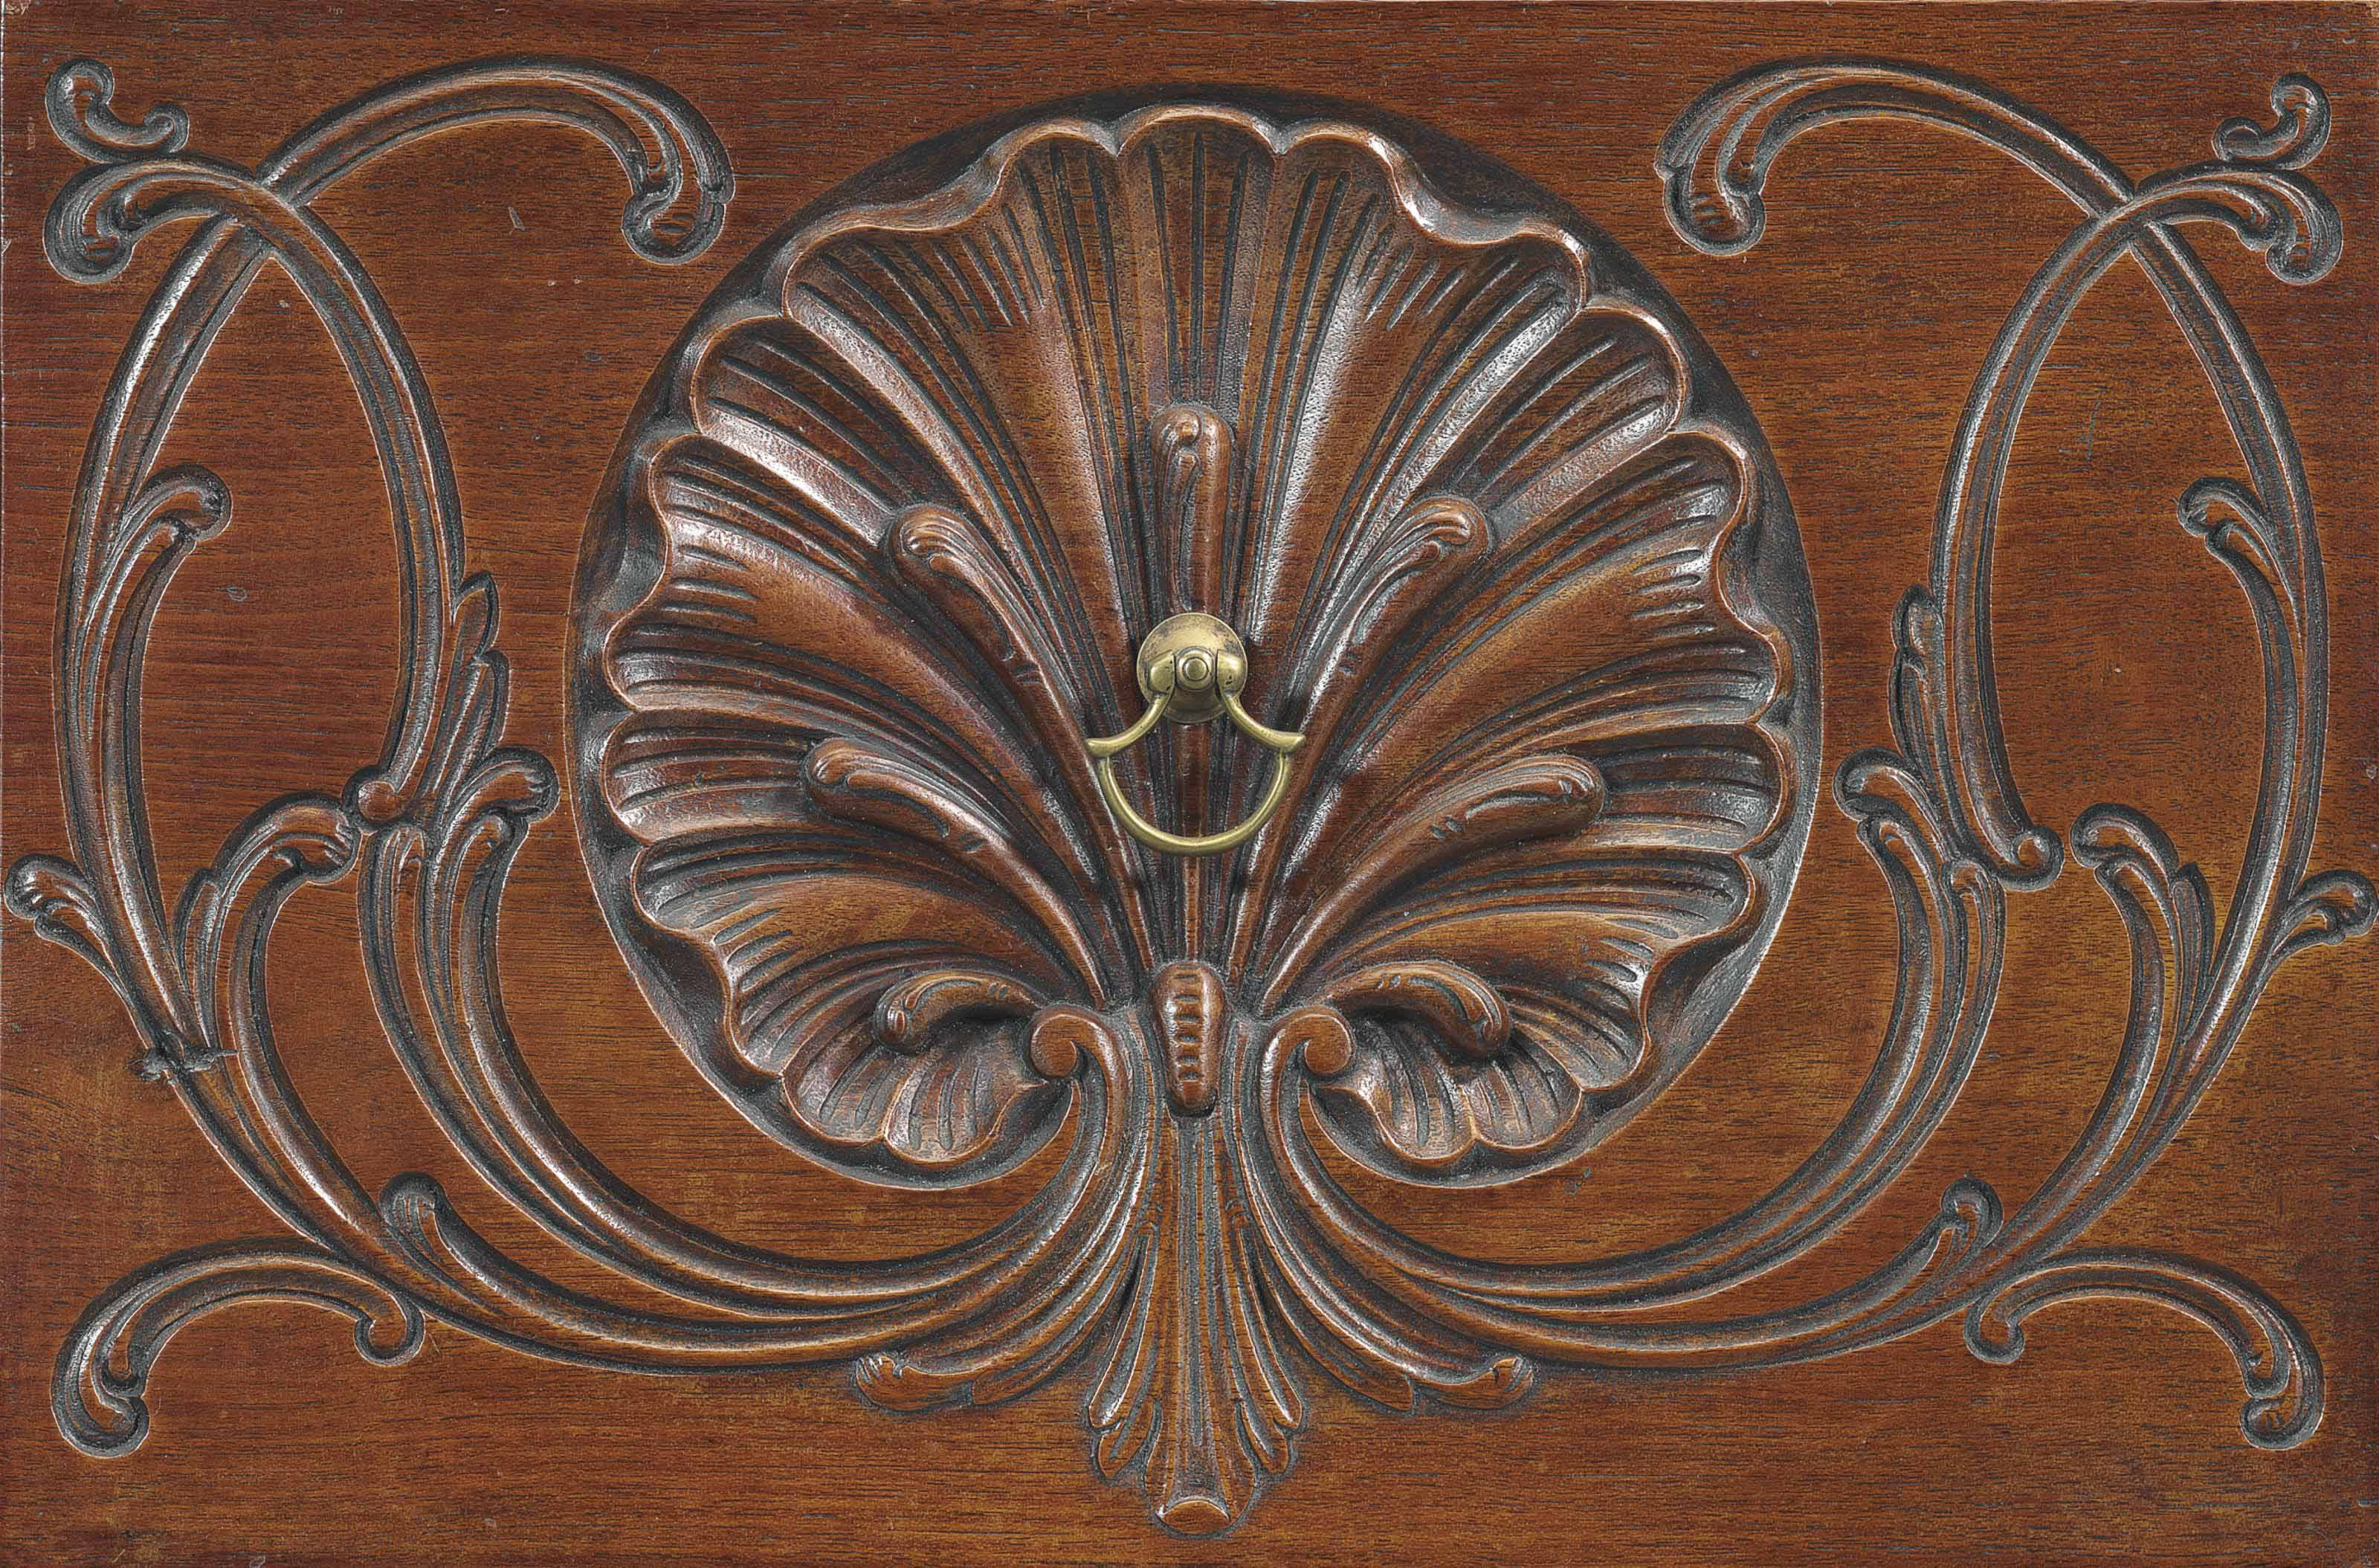 A CHIPPENDALE CARVED WALNUT CHEST-ON-CHEST